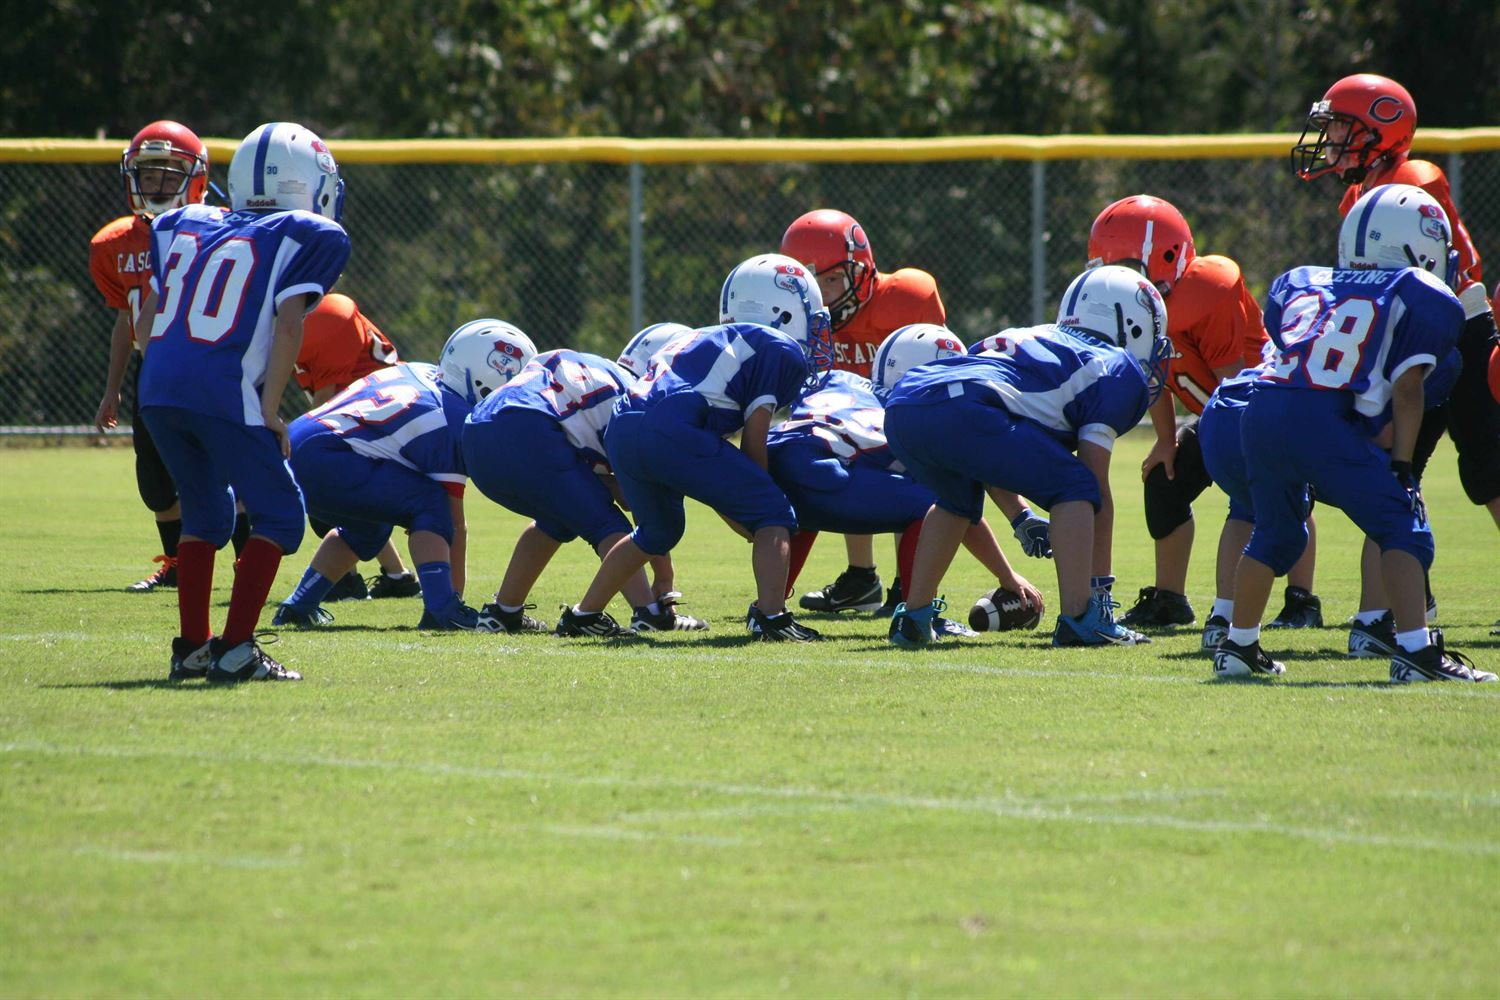 Forrest High School - Chapel Hill Youth Football